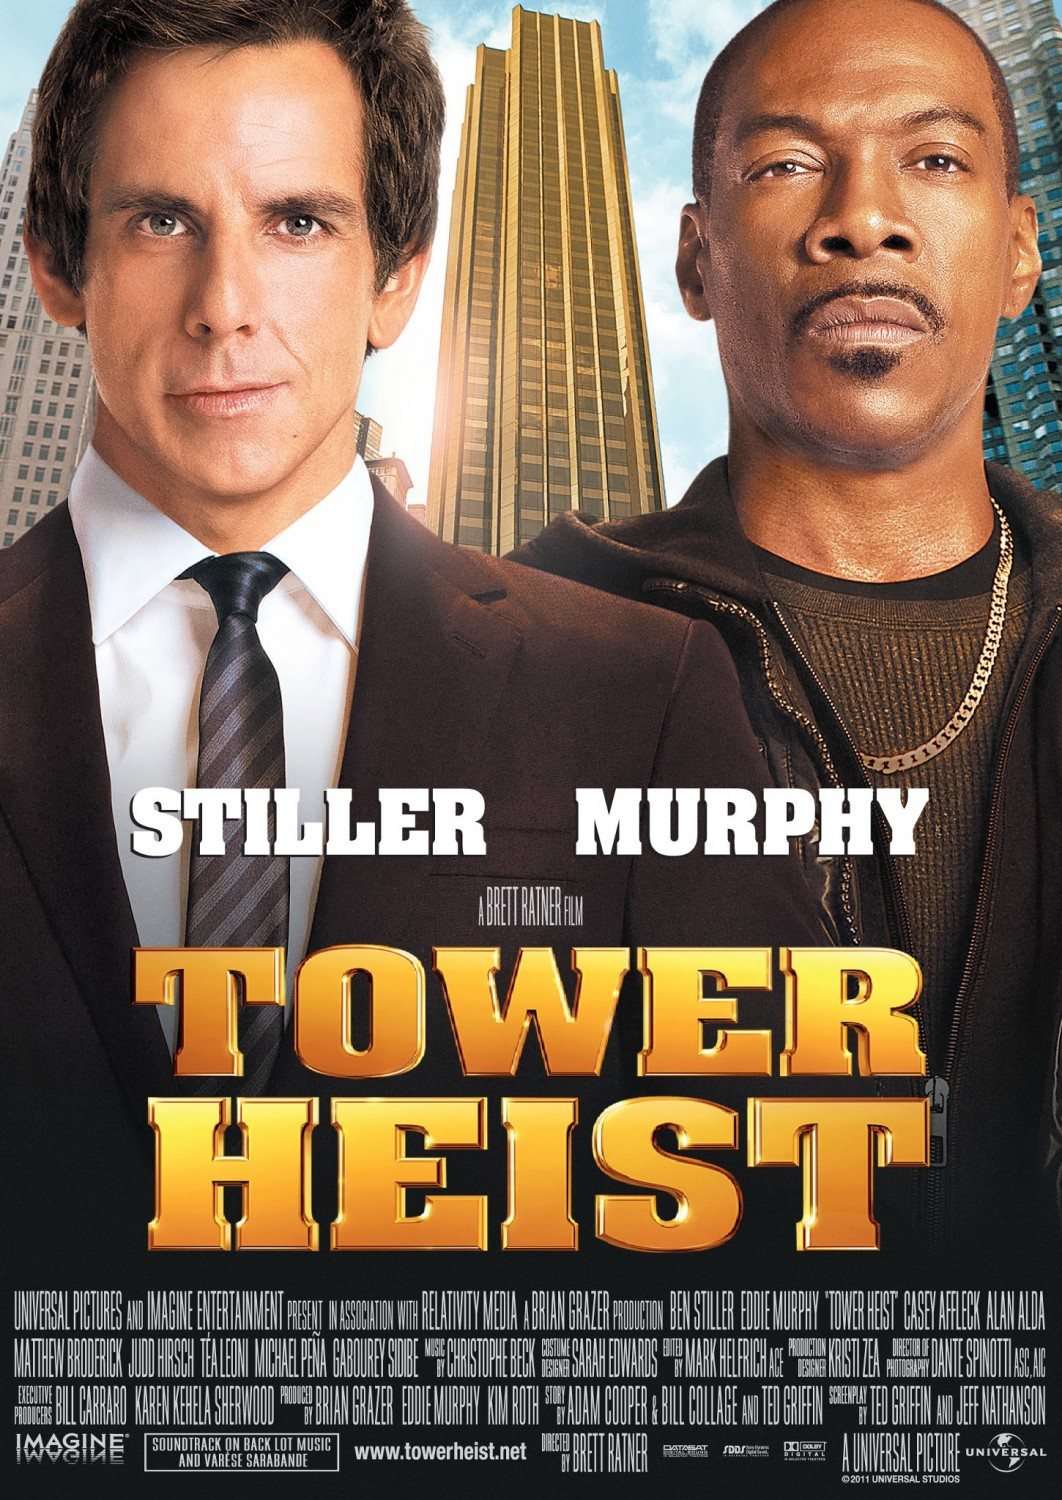 Zachary S. Marsh's Movie Reviews: REVIEW: Tower Heist